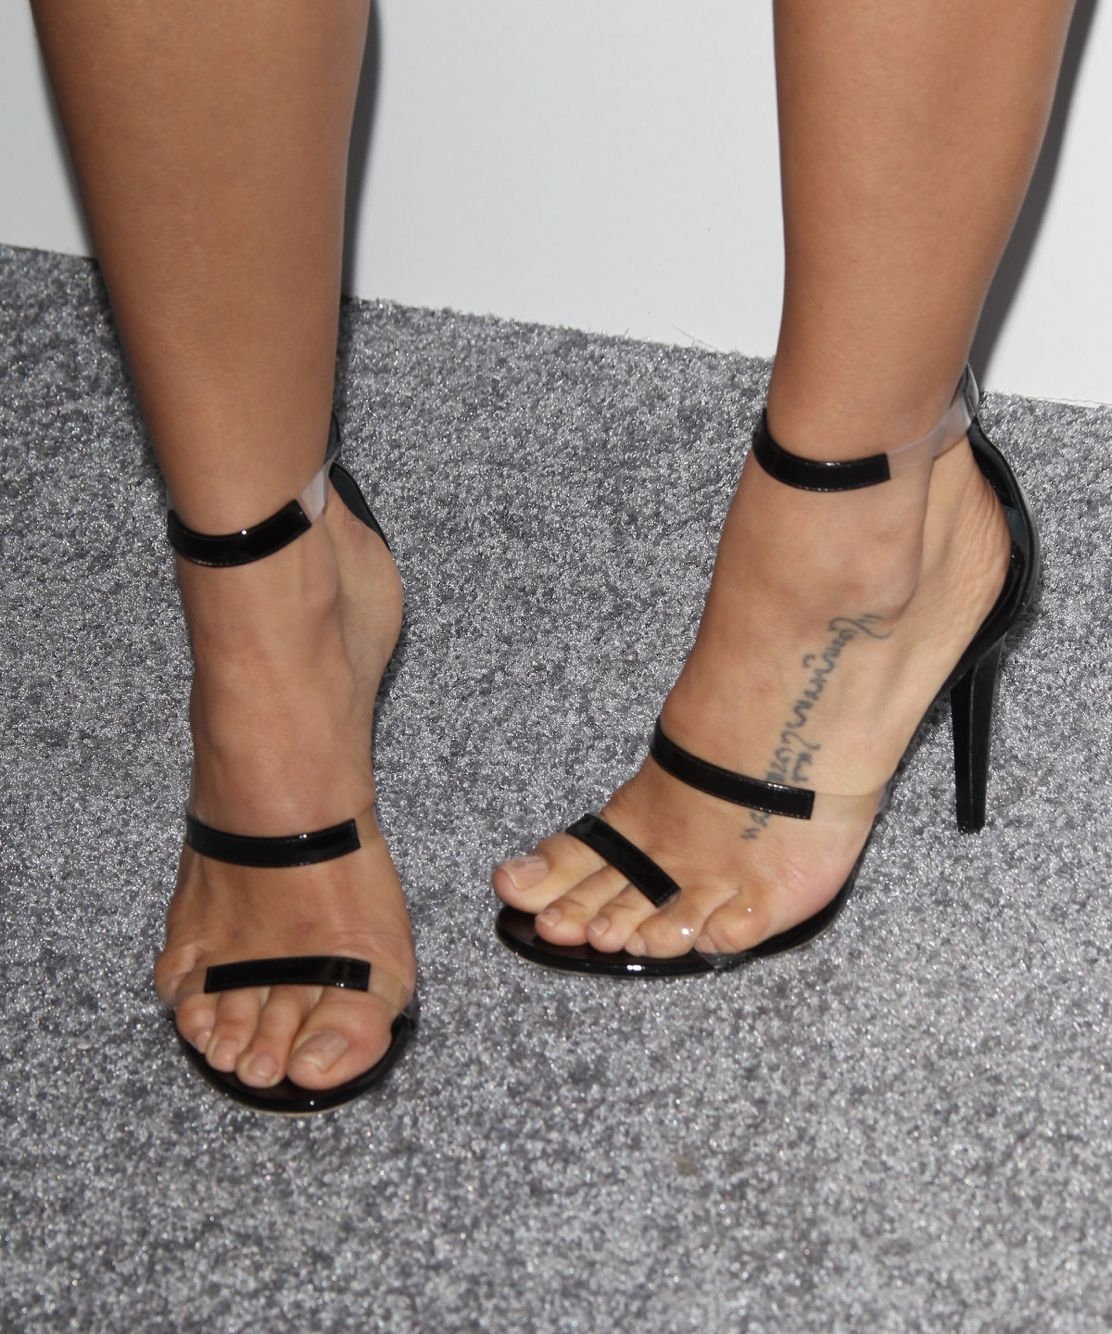 jenna dewan 39 s high heels xoxo high in heels 2 pinterest high heel and celebrity feet. Black Bedroom Furniture Sets. Home Design Ideas